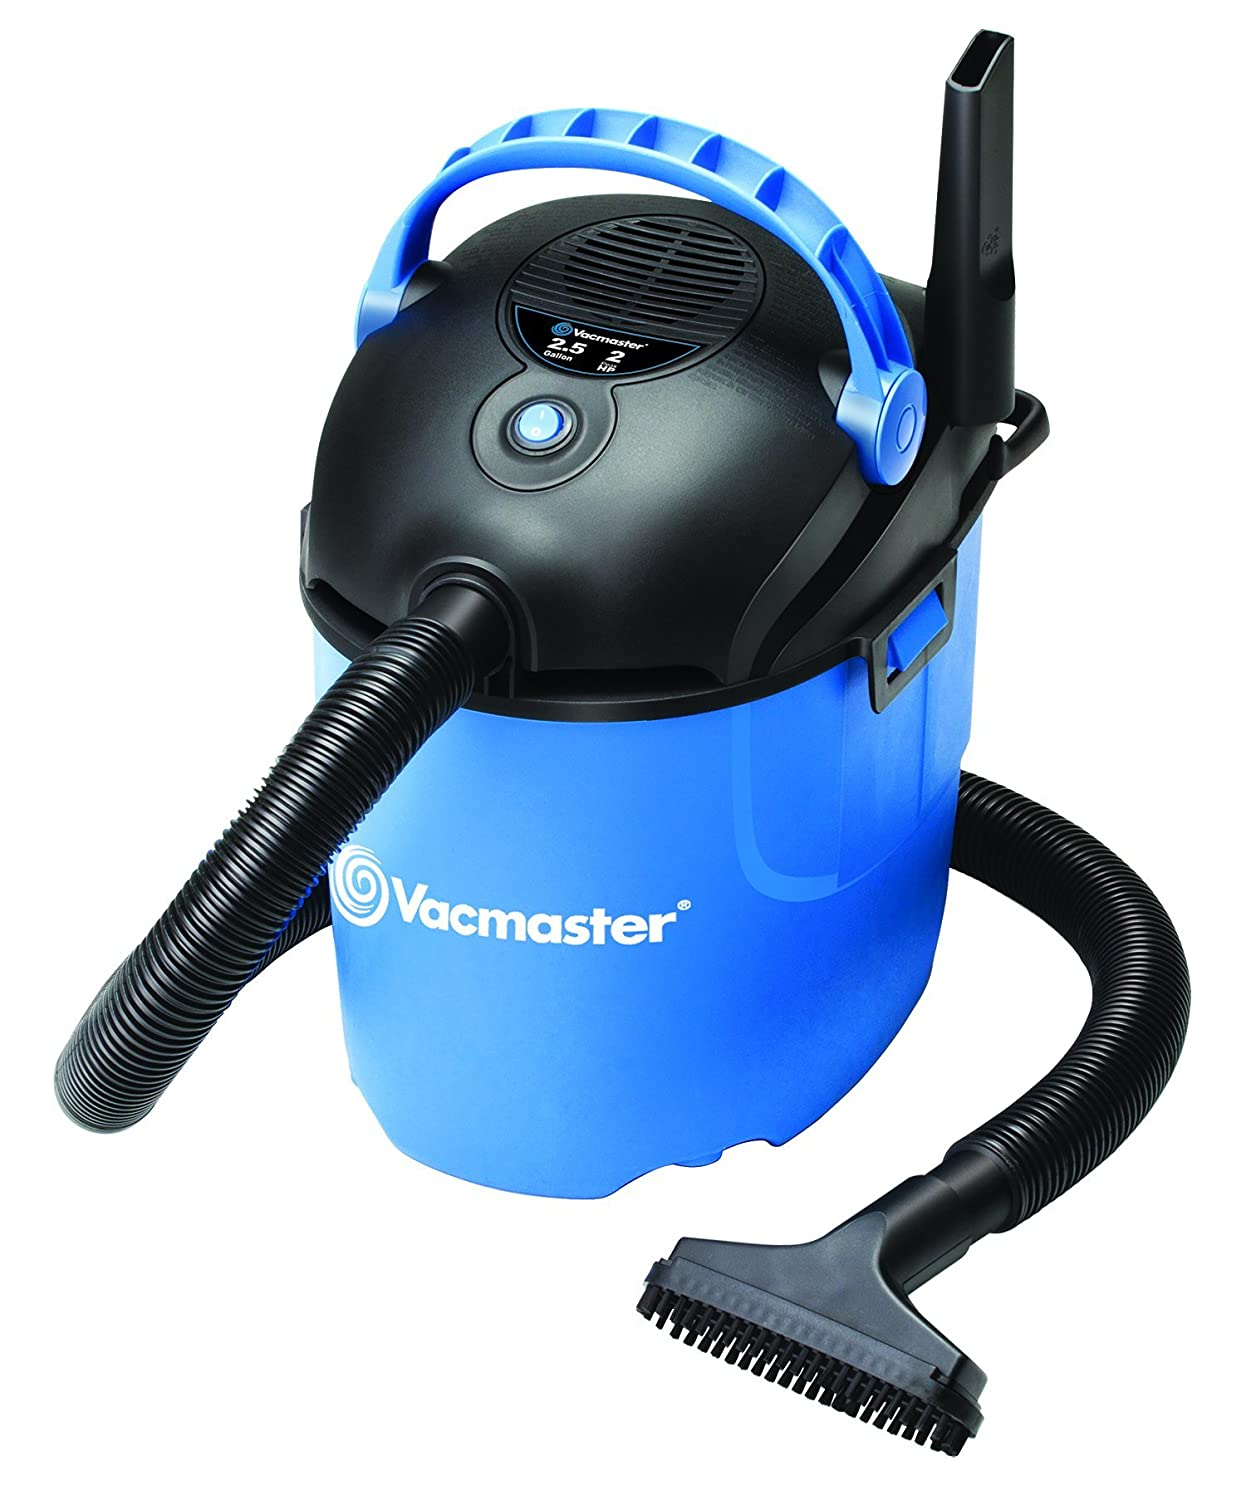 Vacmaster, VP205, 2.5 Gallon 2 Peak HP Portable Wet Dry Shop Vacuum